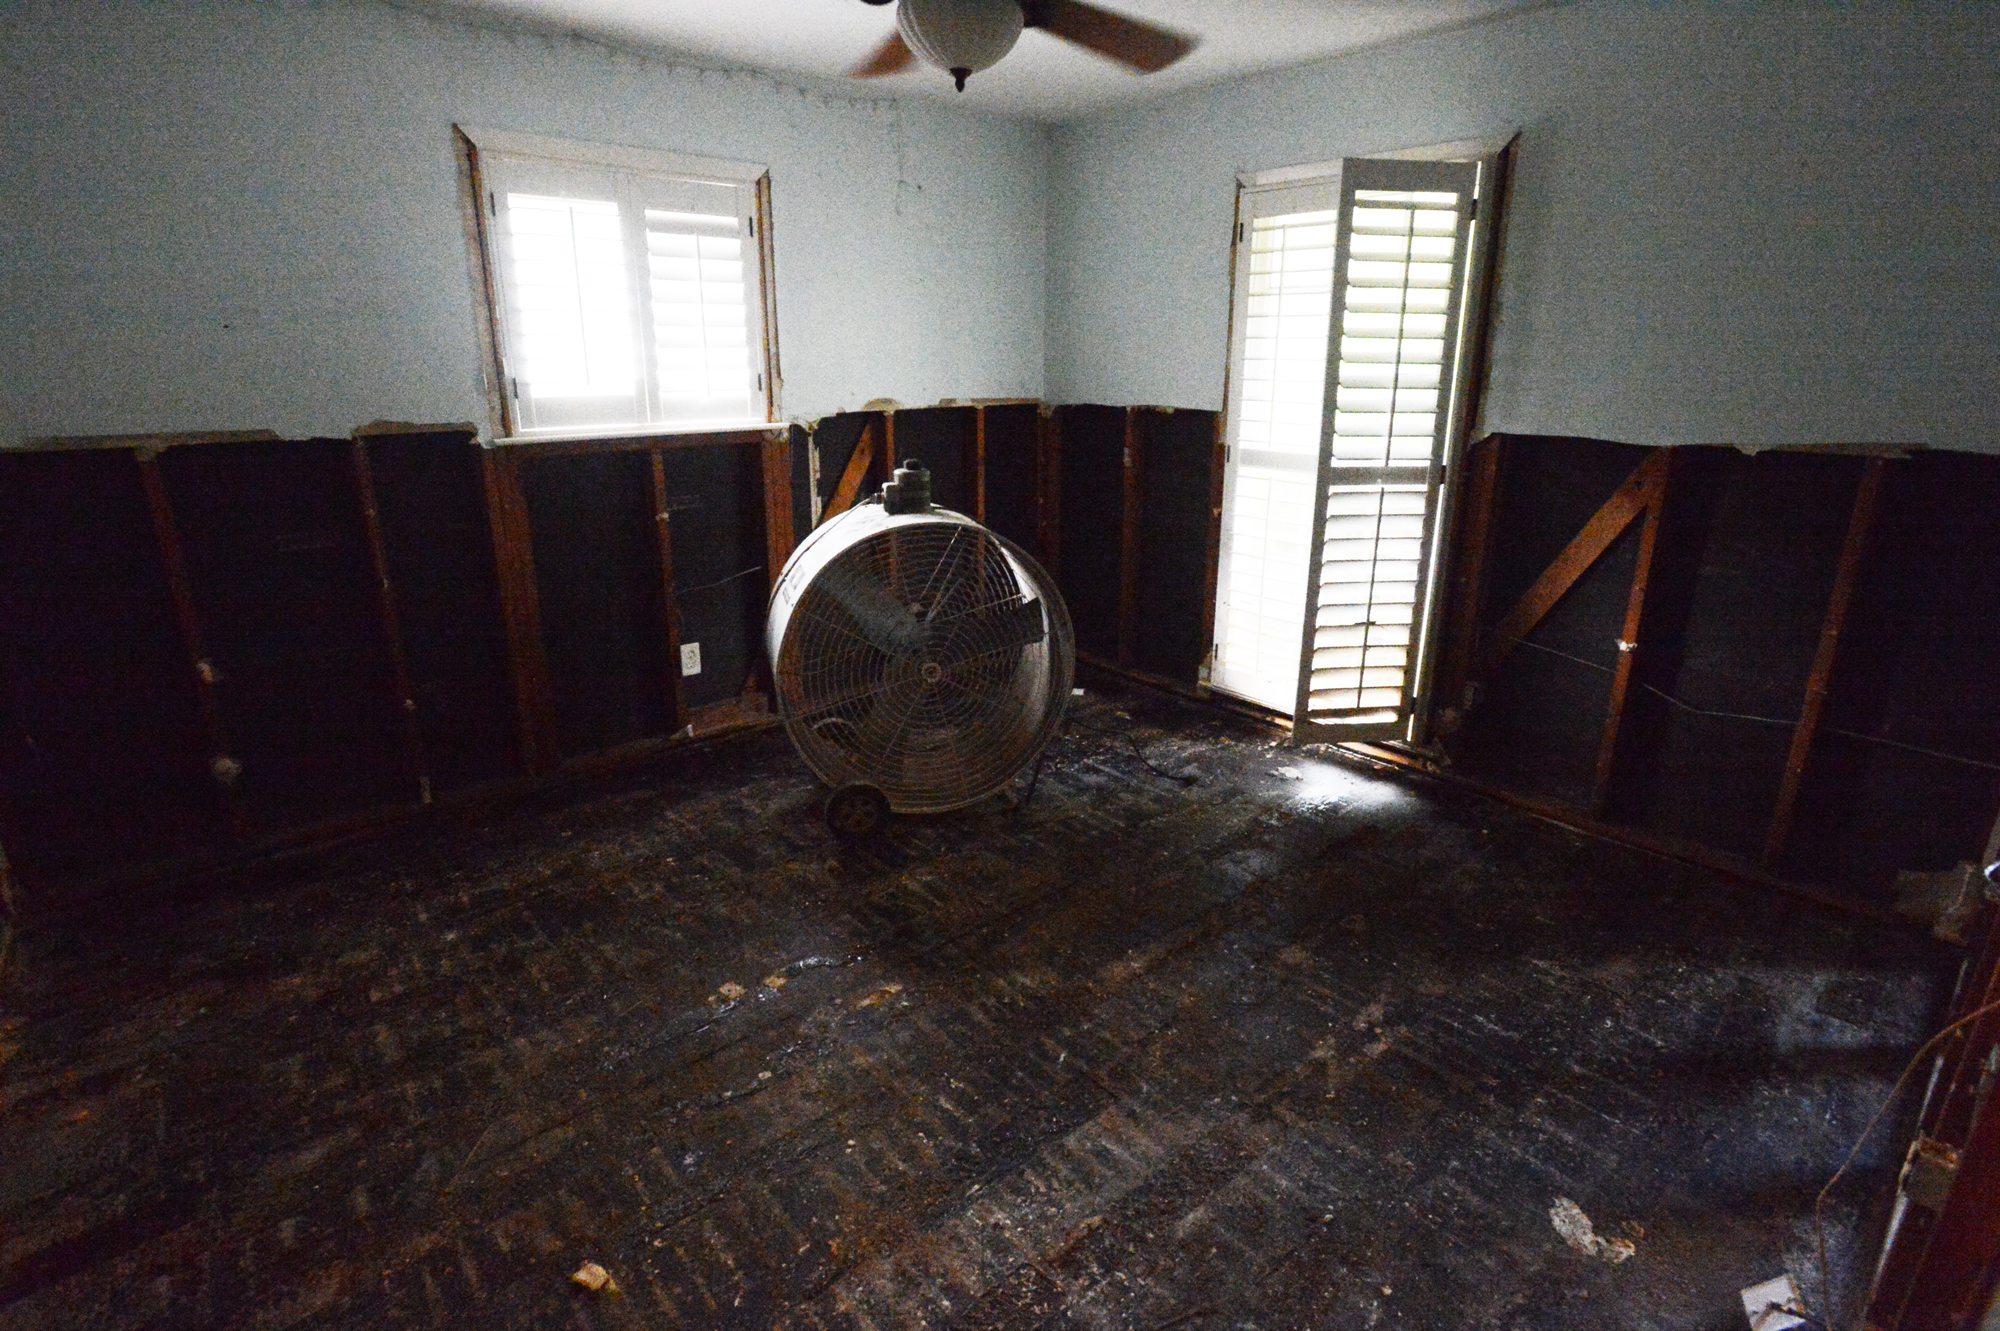 My office, aka Chookooloonks HQ.  Before we'd removed the flooring, the hardwoods had buckled almost two feet off the subfloor.  Floodwater ain't no joke.